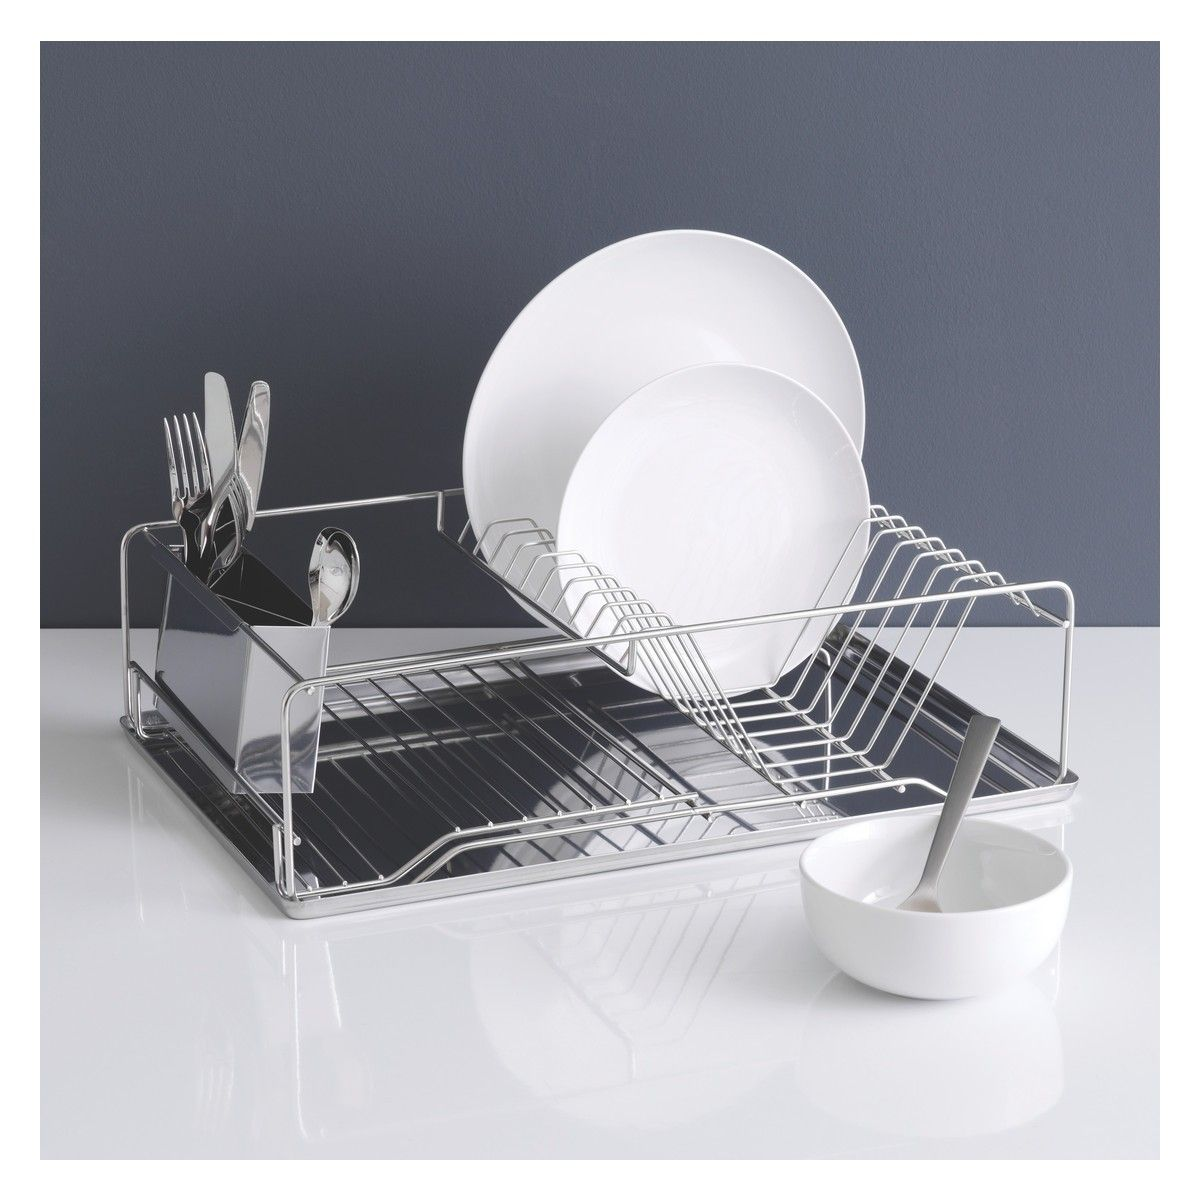 Sabatier Dish Rack Delectable Decker Stainless Steel Single Level Dish Drainer  Dish Drainers Review